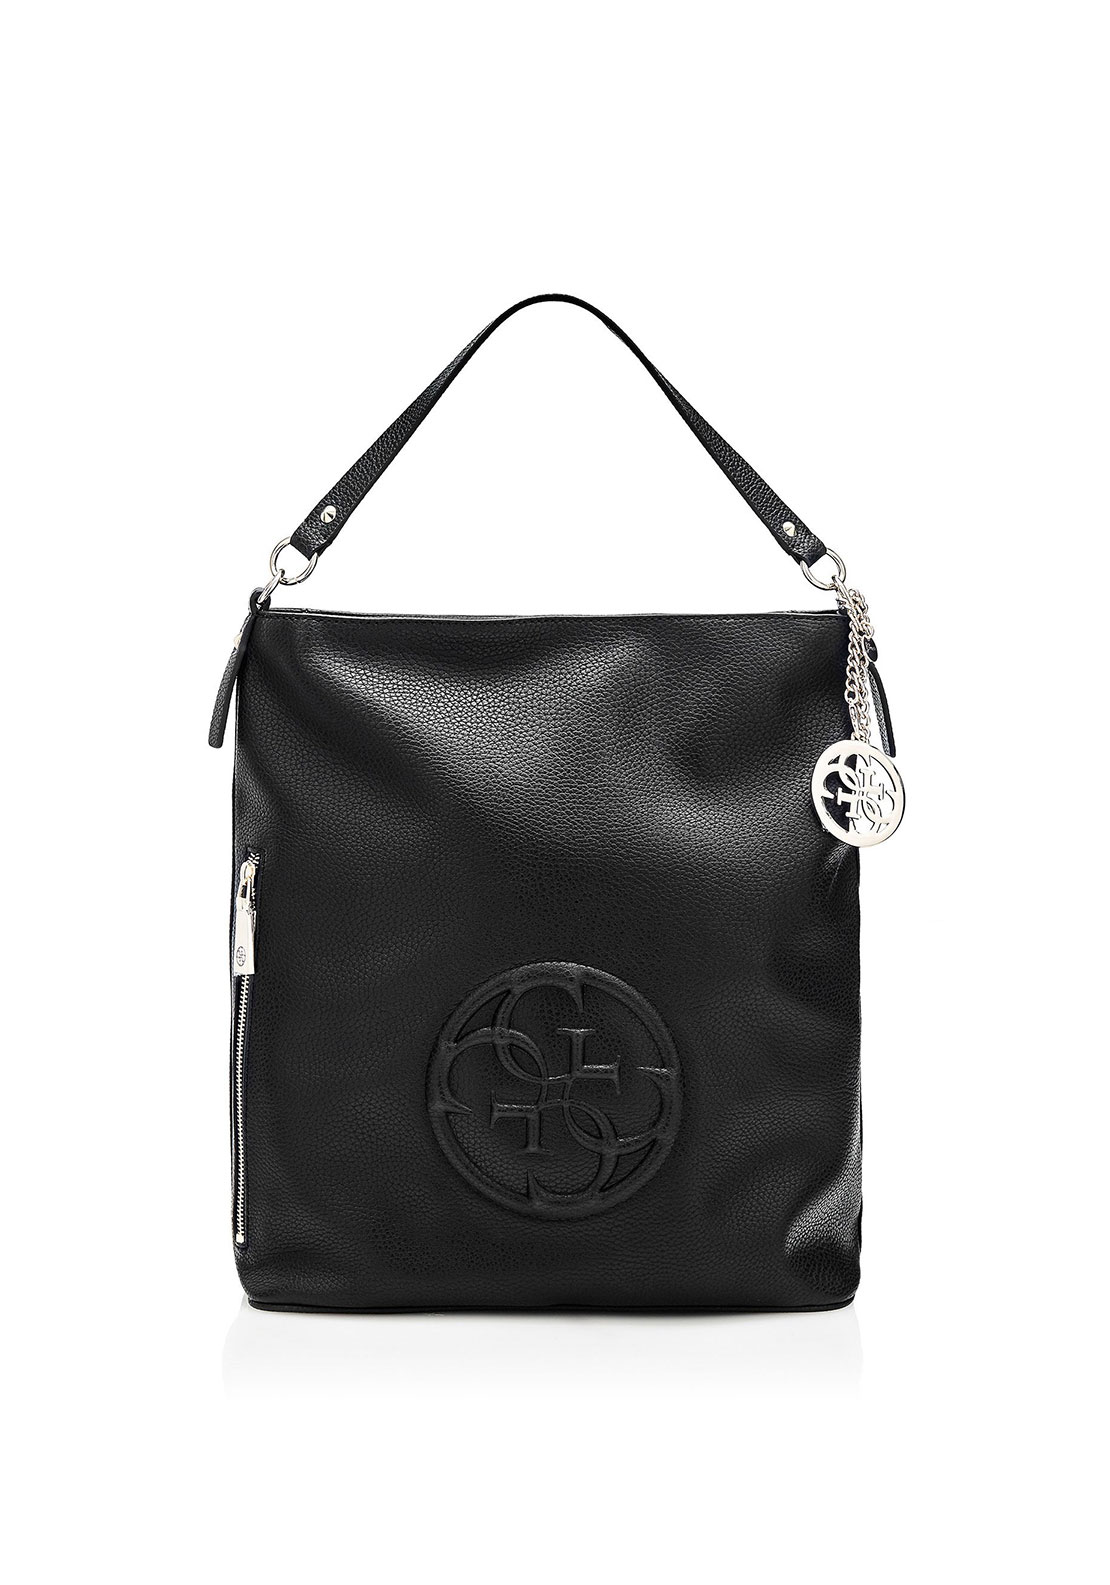 Guess Korry Crush Shoulder Bag, Black